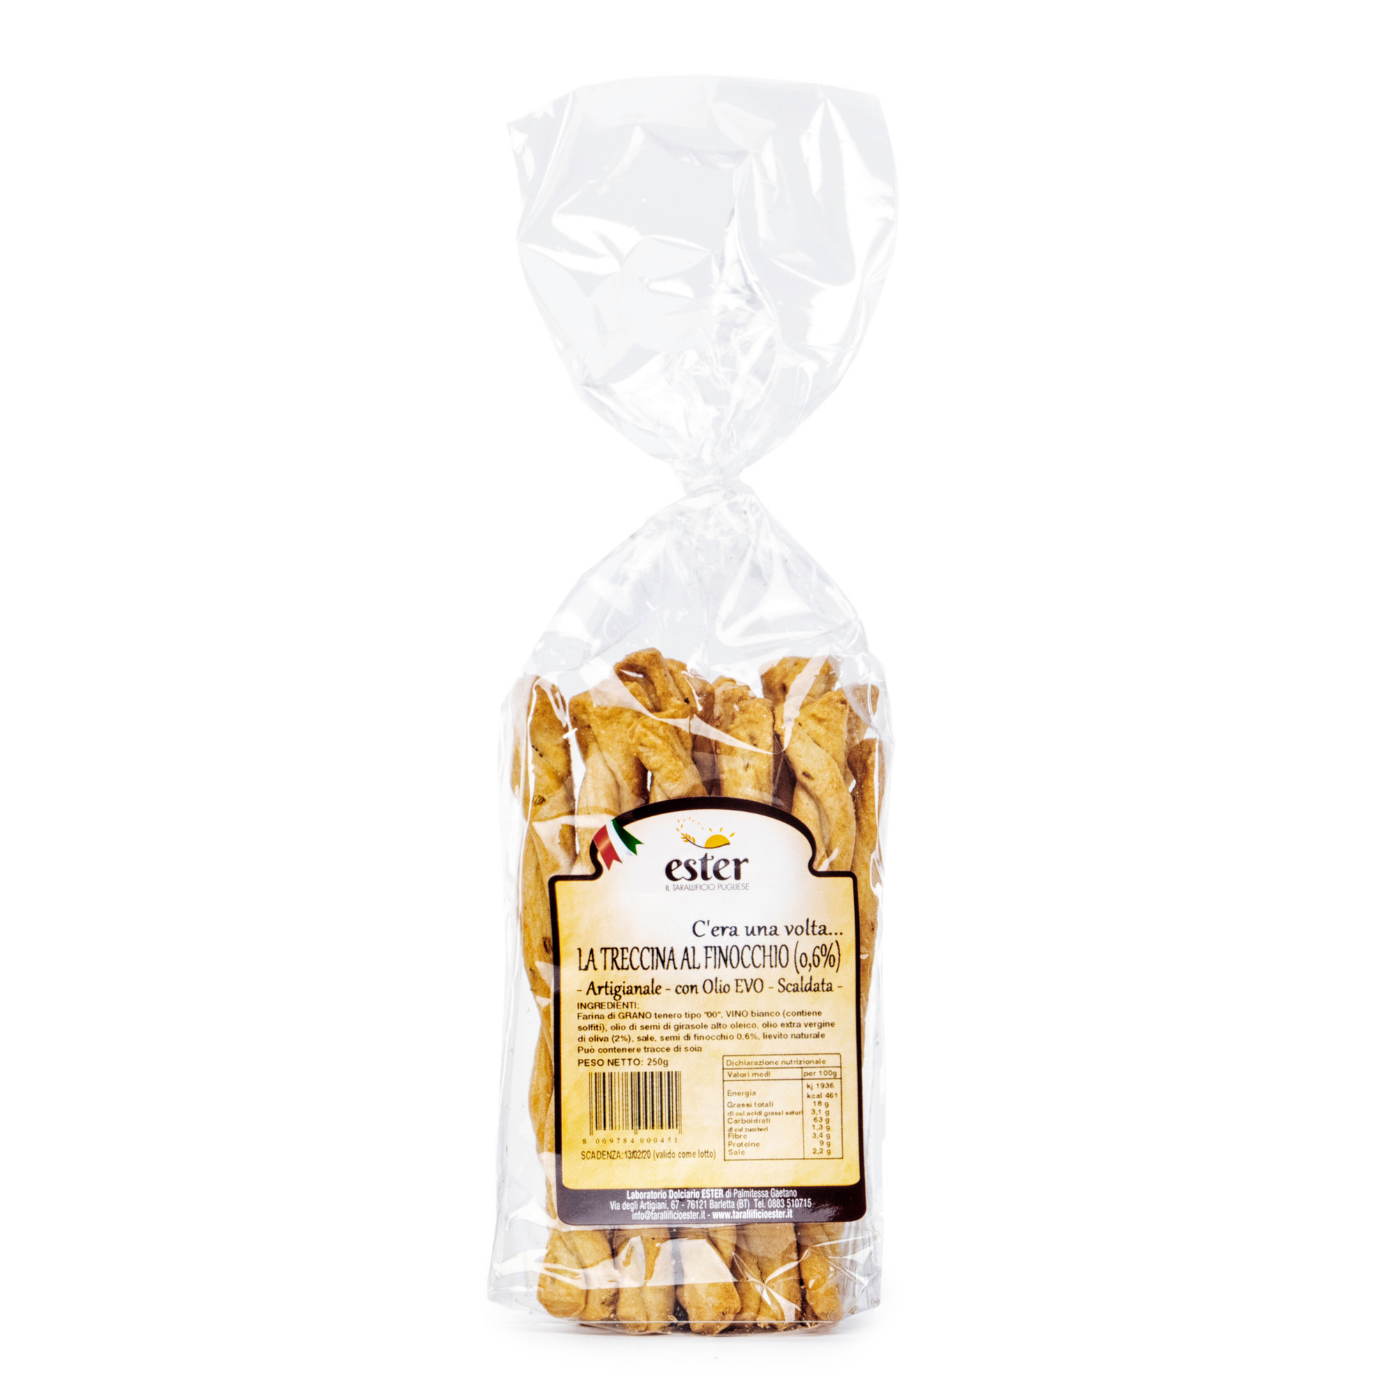 Ester Black Pepper Treccine Baked Product Wheat Salted Snack Biscuit